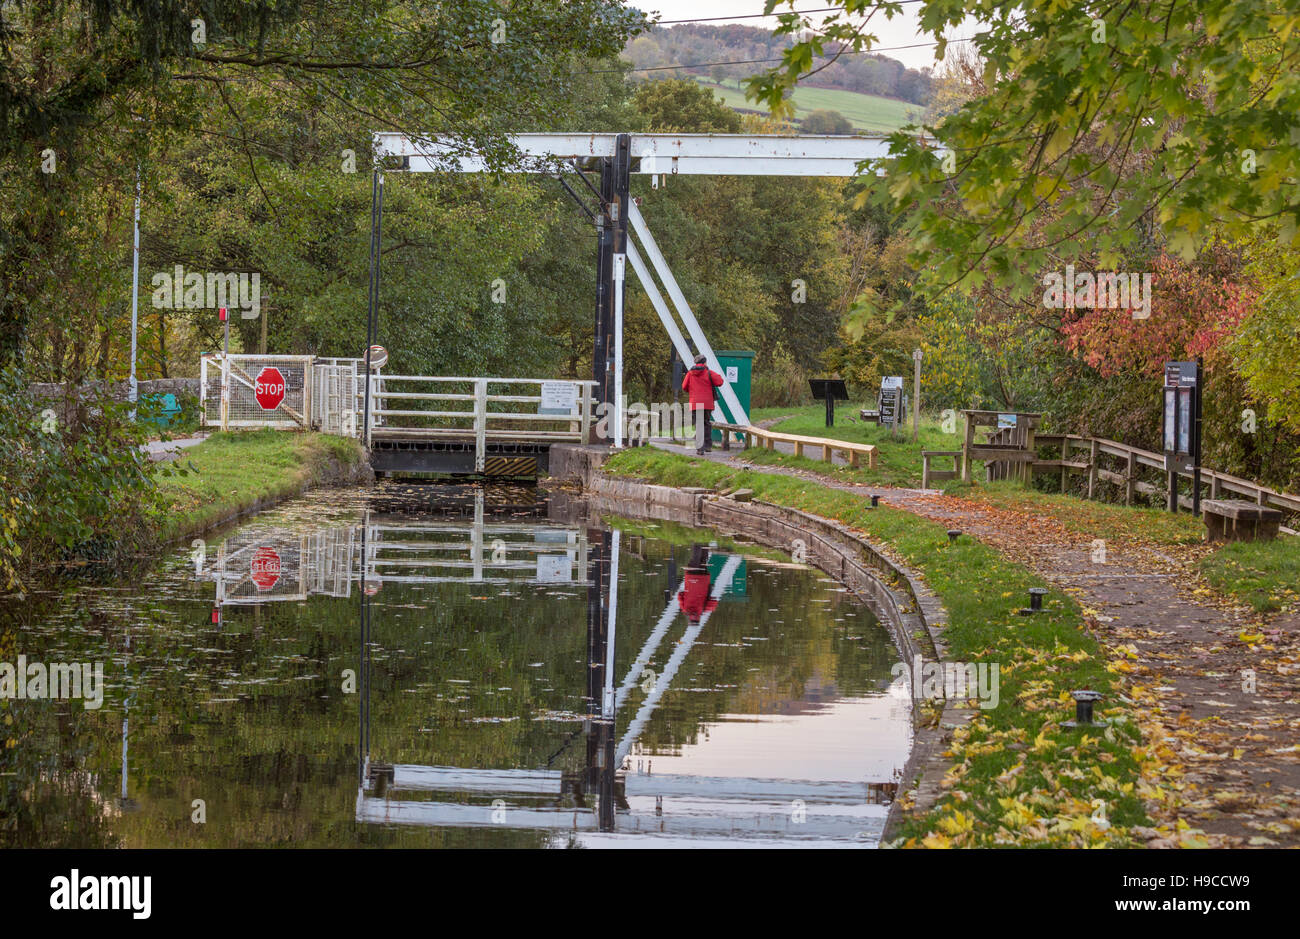 Autumn on the Monmouthshire & Brecon Canal at Talybont-on-Usk lift bridge, Brecon Beacons National Park, Wales, - Stock Image